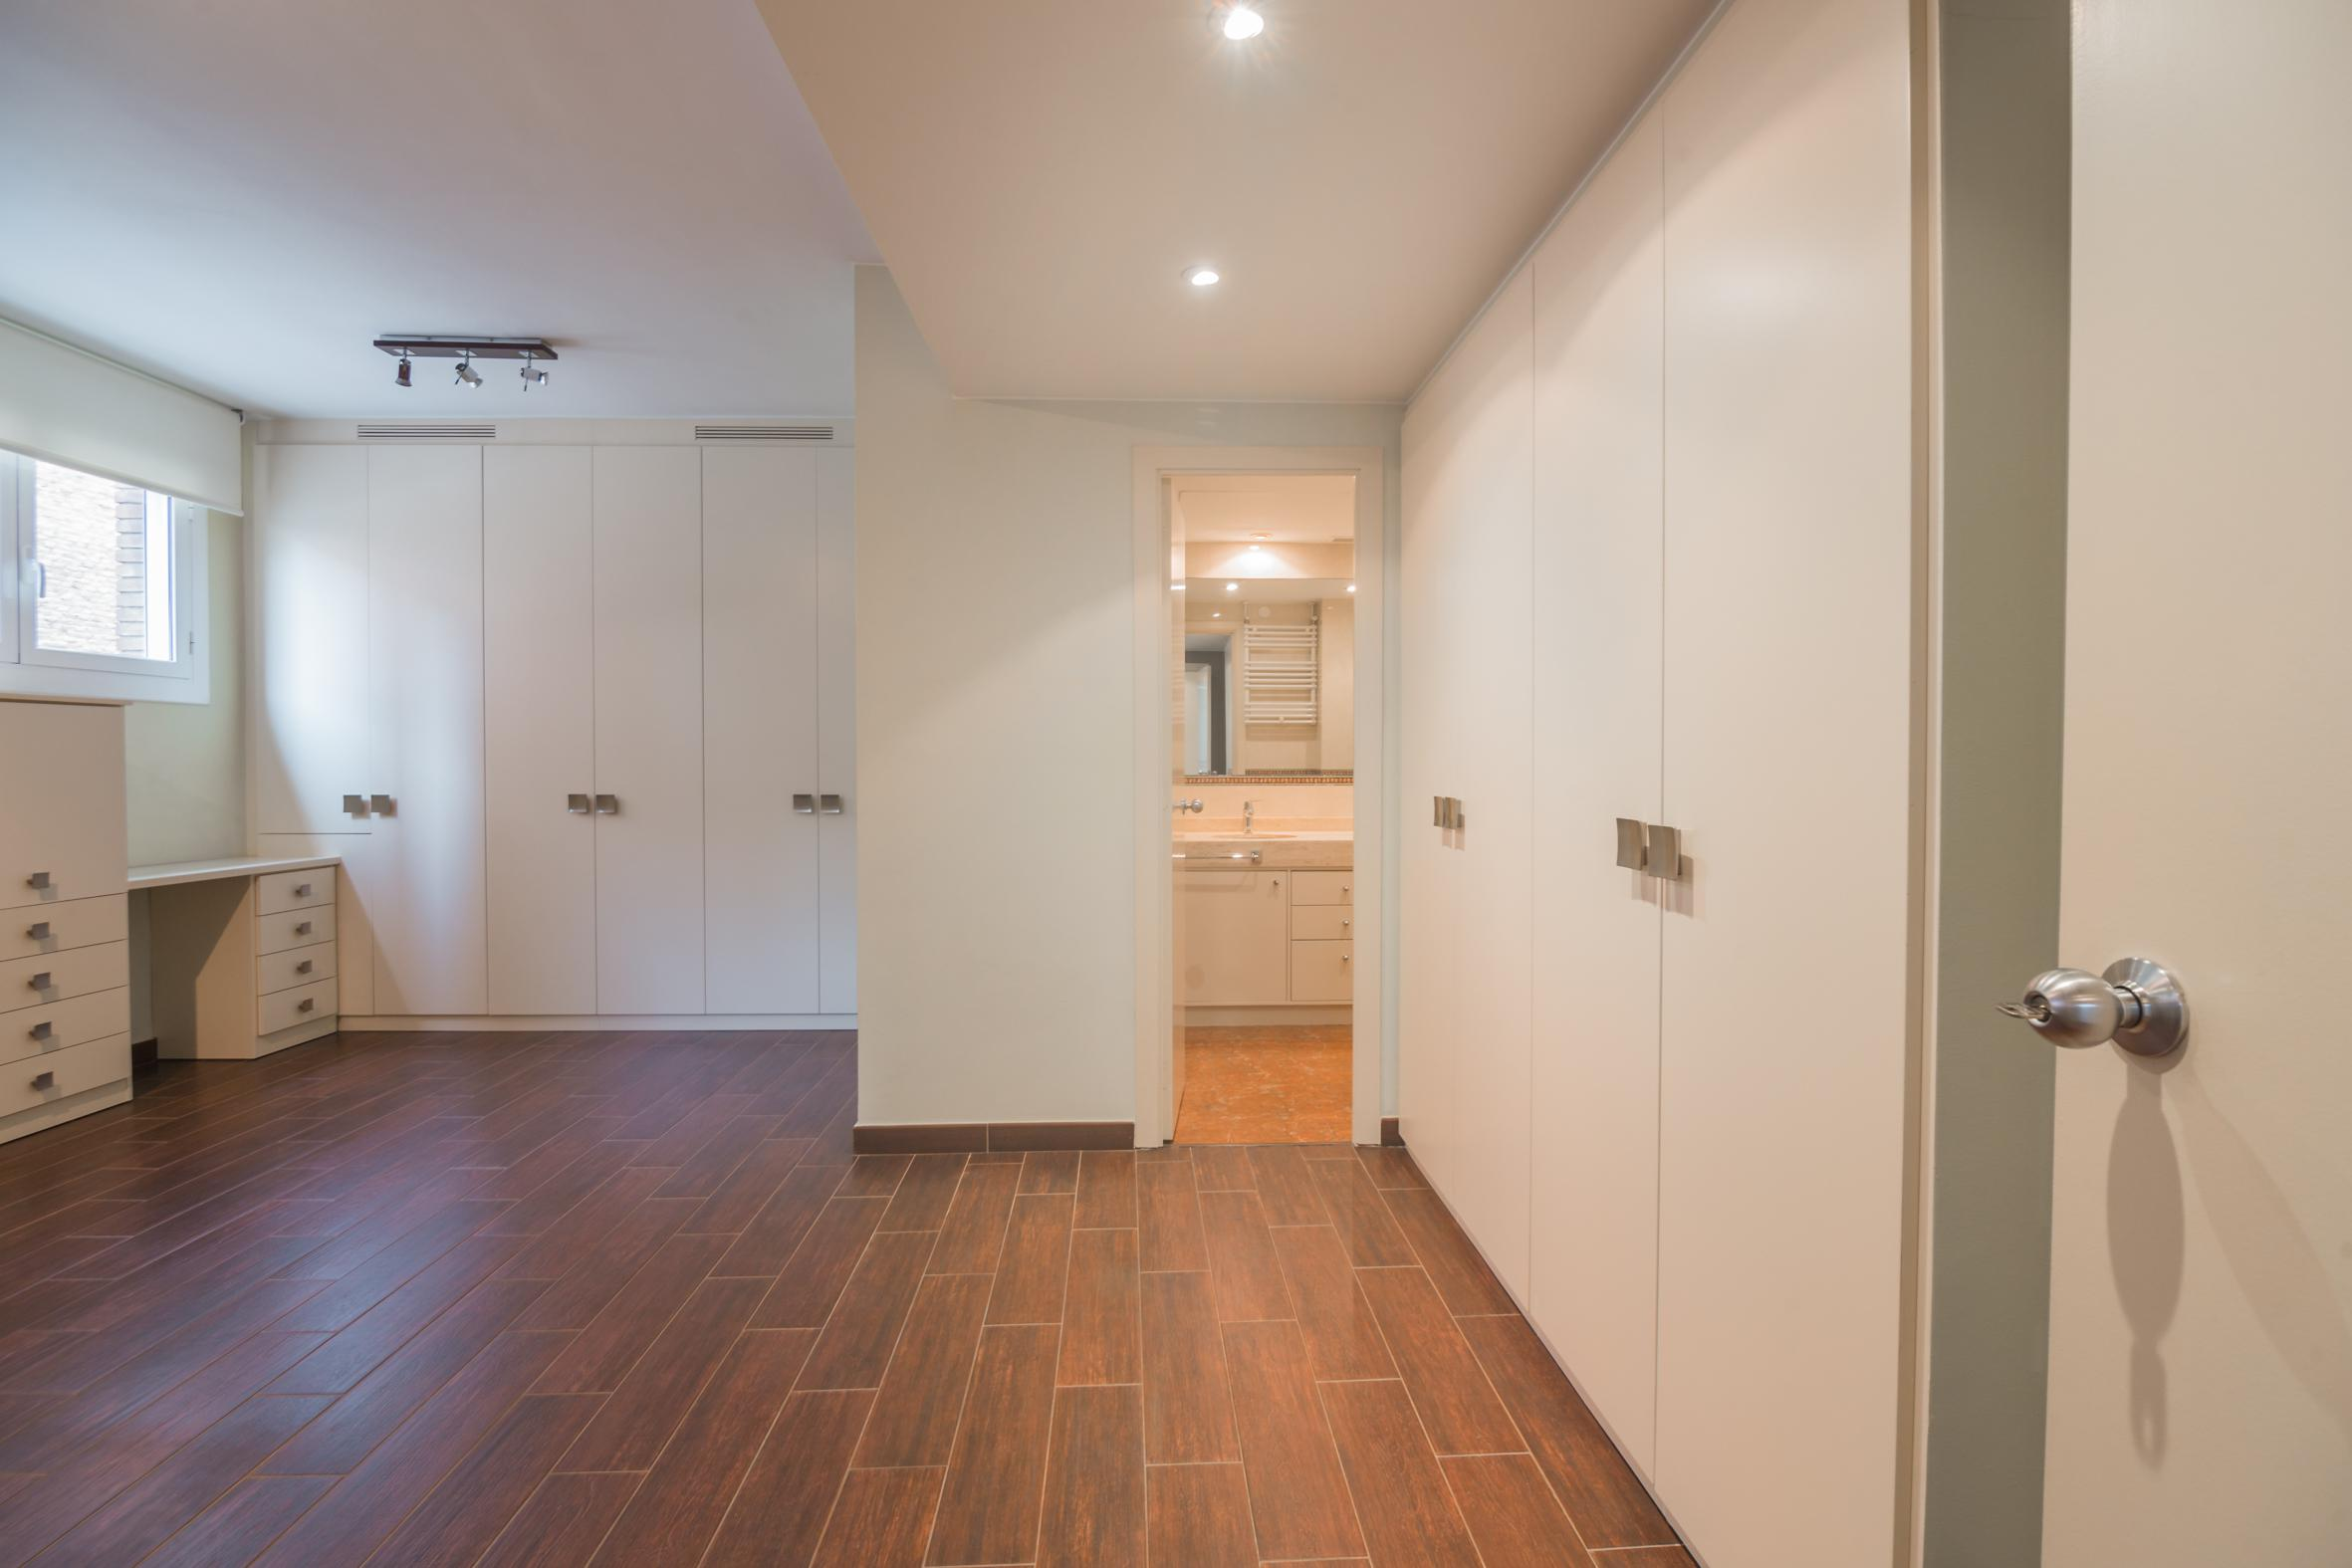 246902 Flat for sale in Les Corts, Pedralbes 13